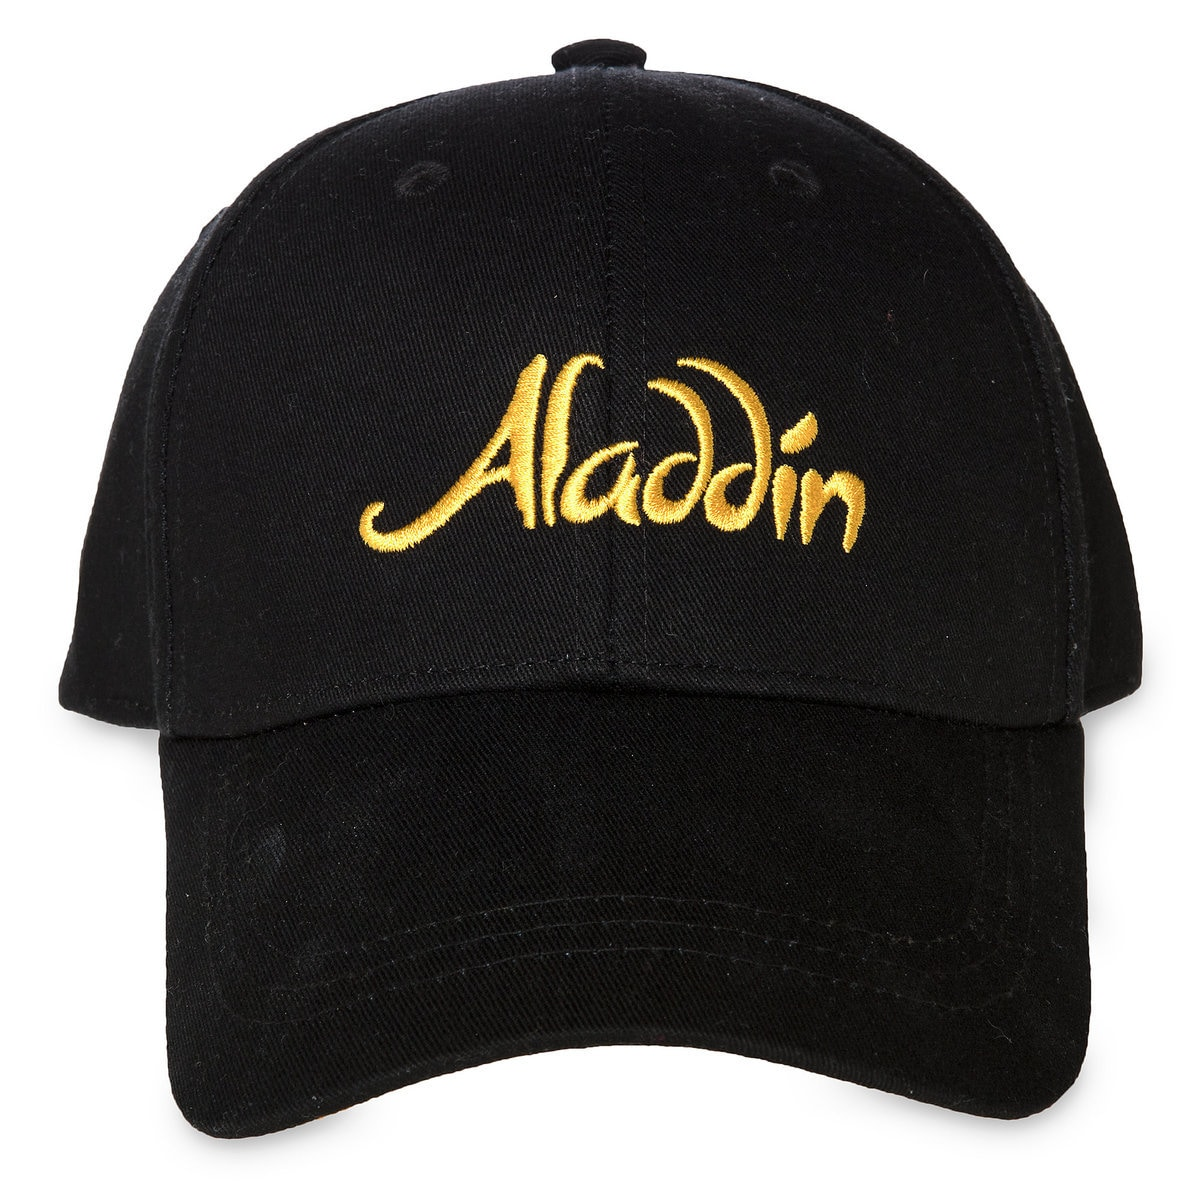 9280cbc318d5b Product Image of Aladdin Baseball Cap for Adults - Oh My Disney   1